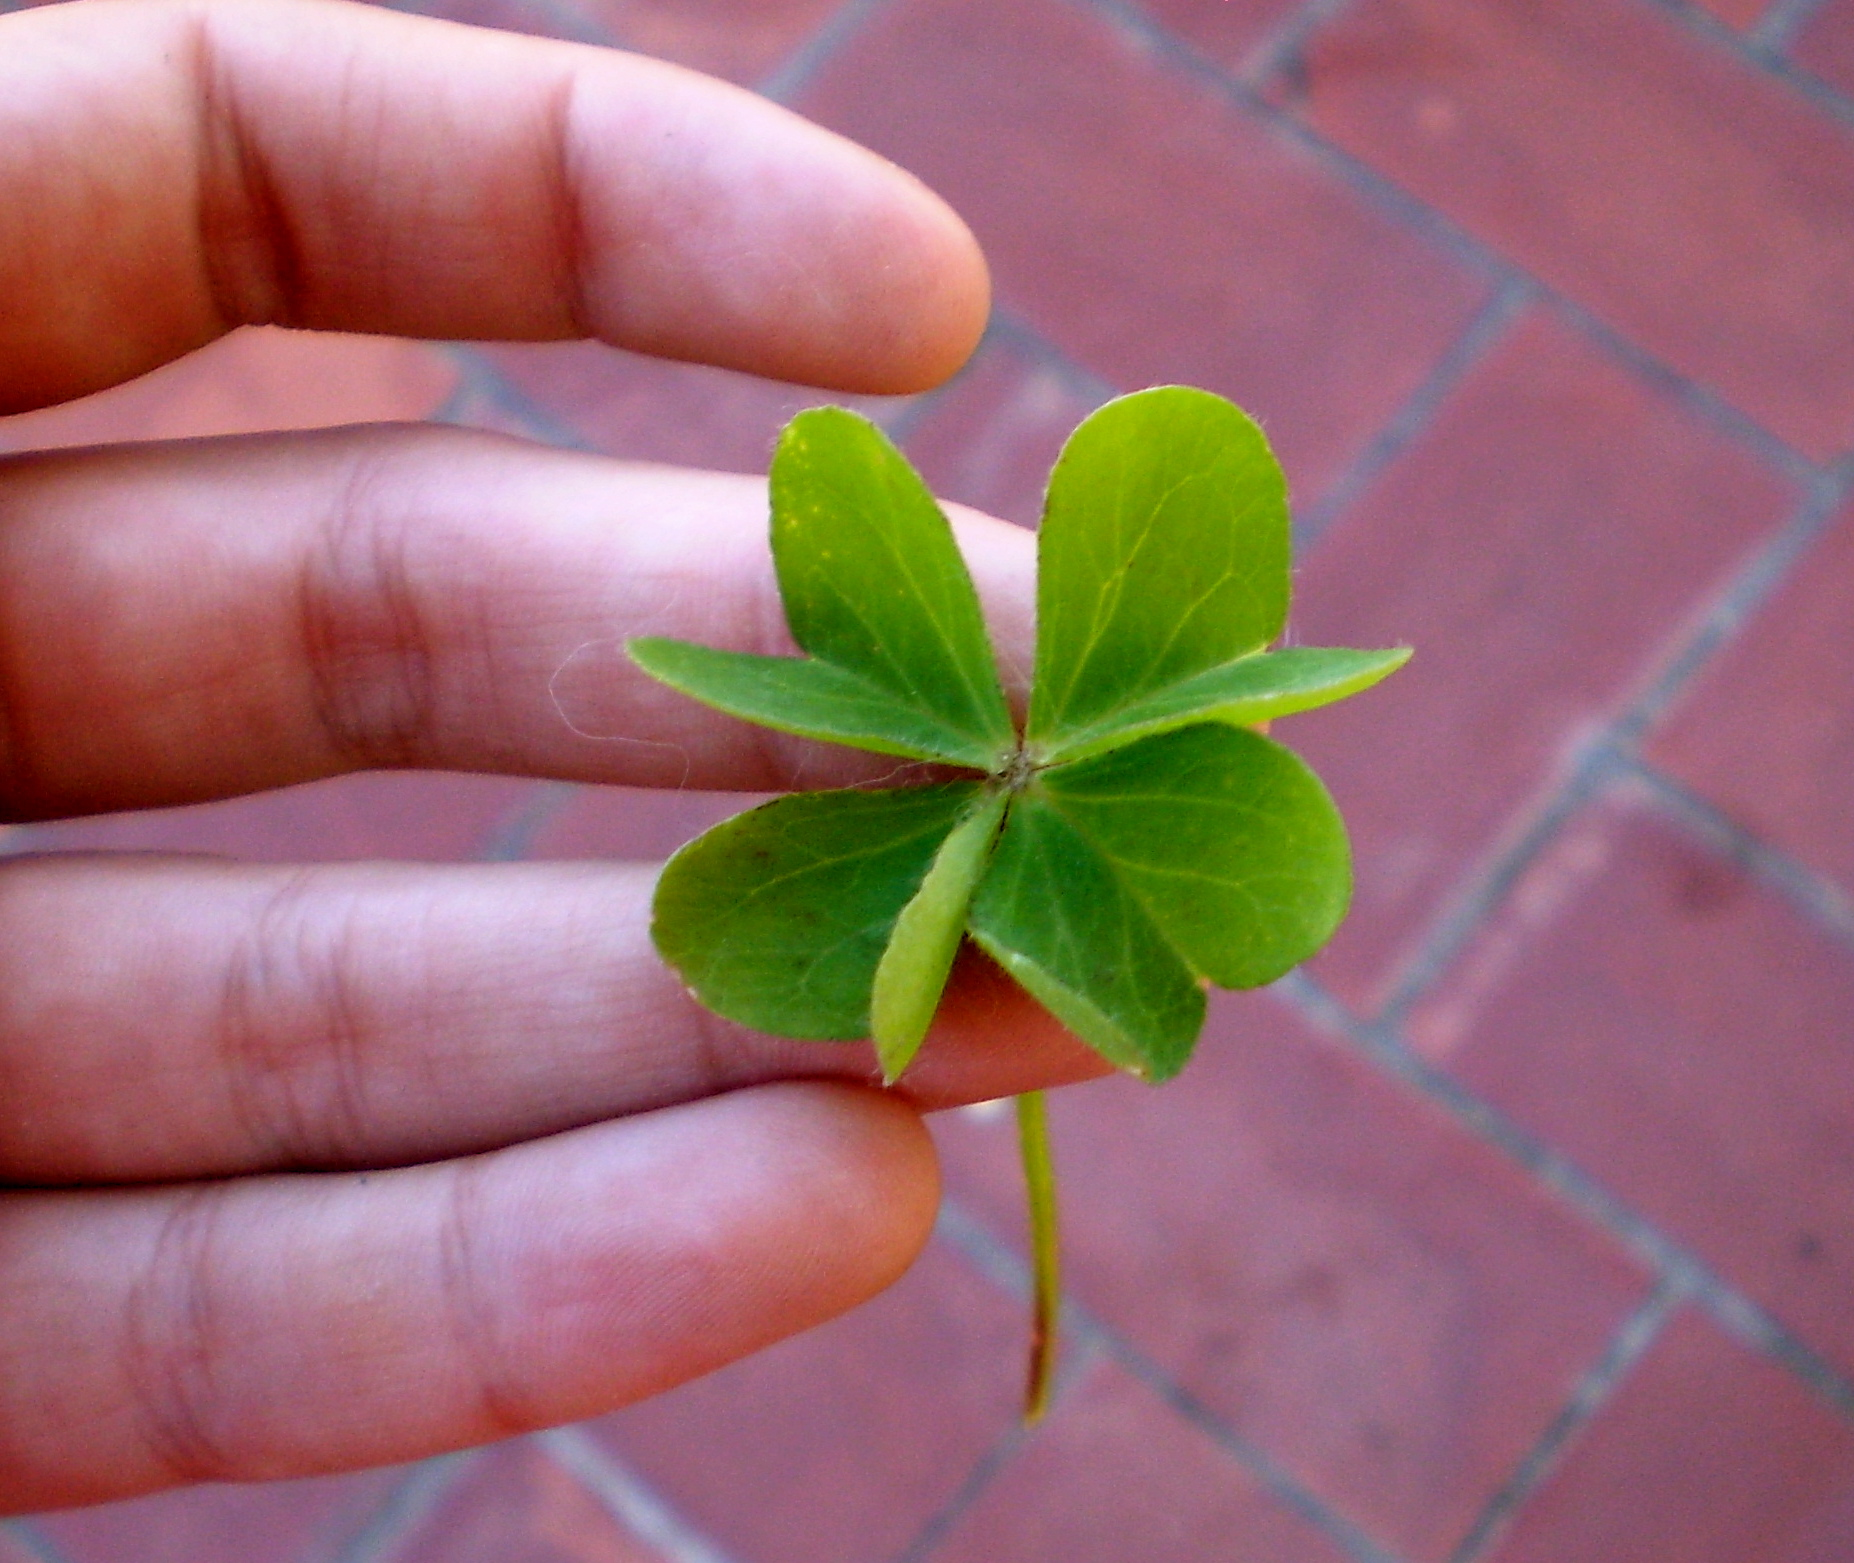 Sometimes luck is simply in appreciating the beauty of a 4 leaf clover.